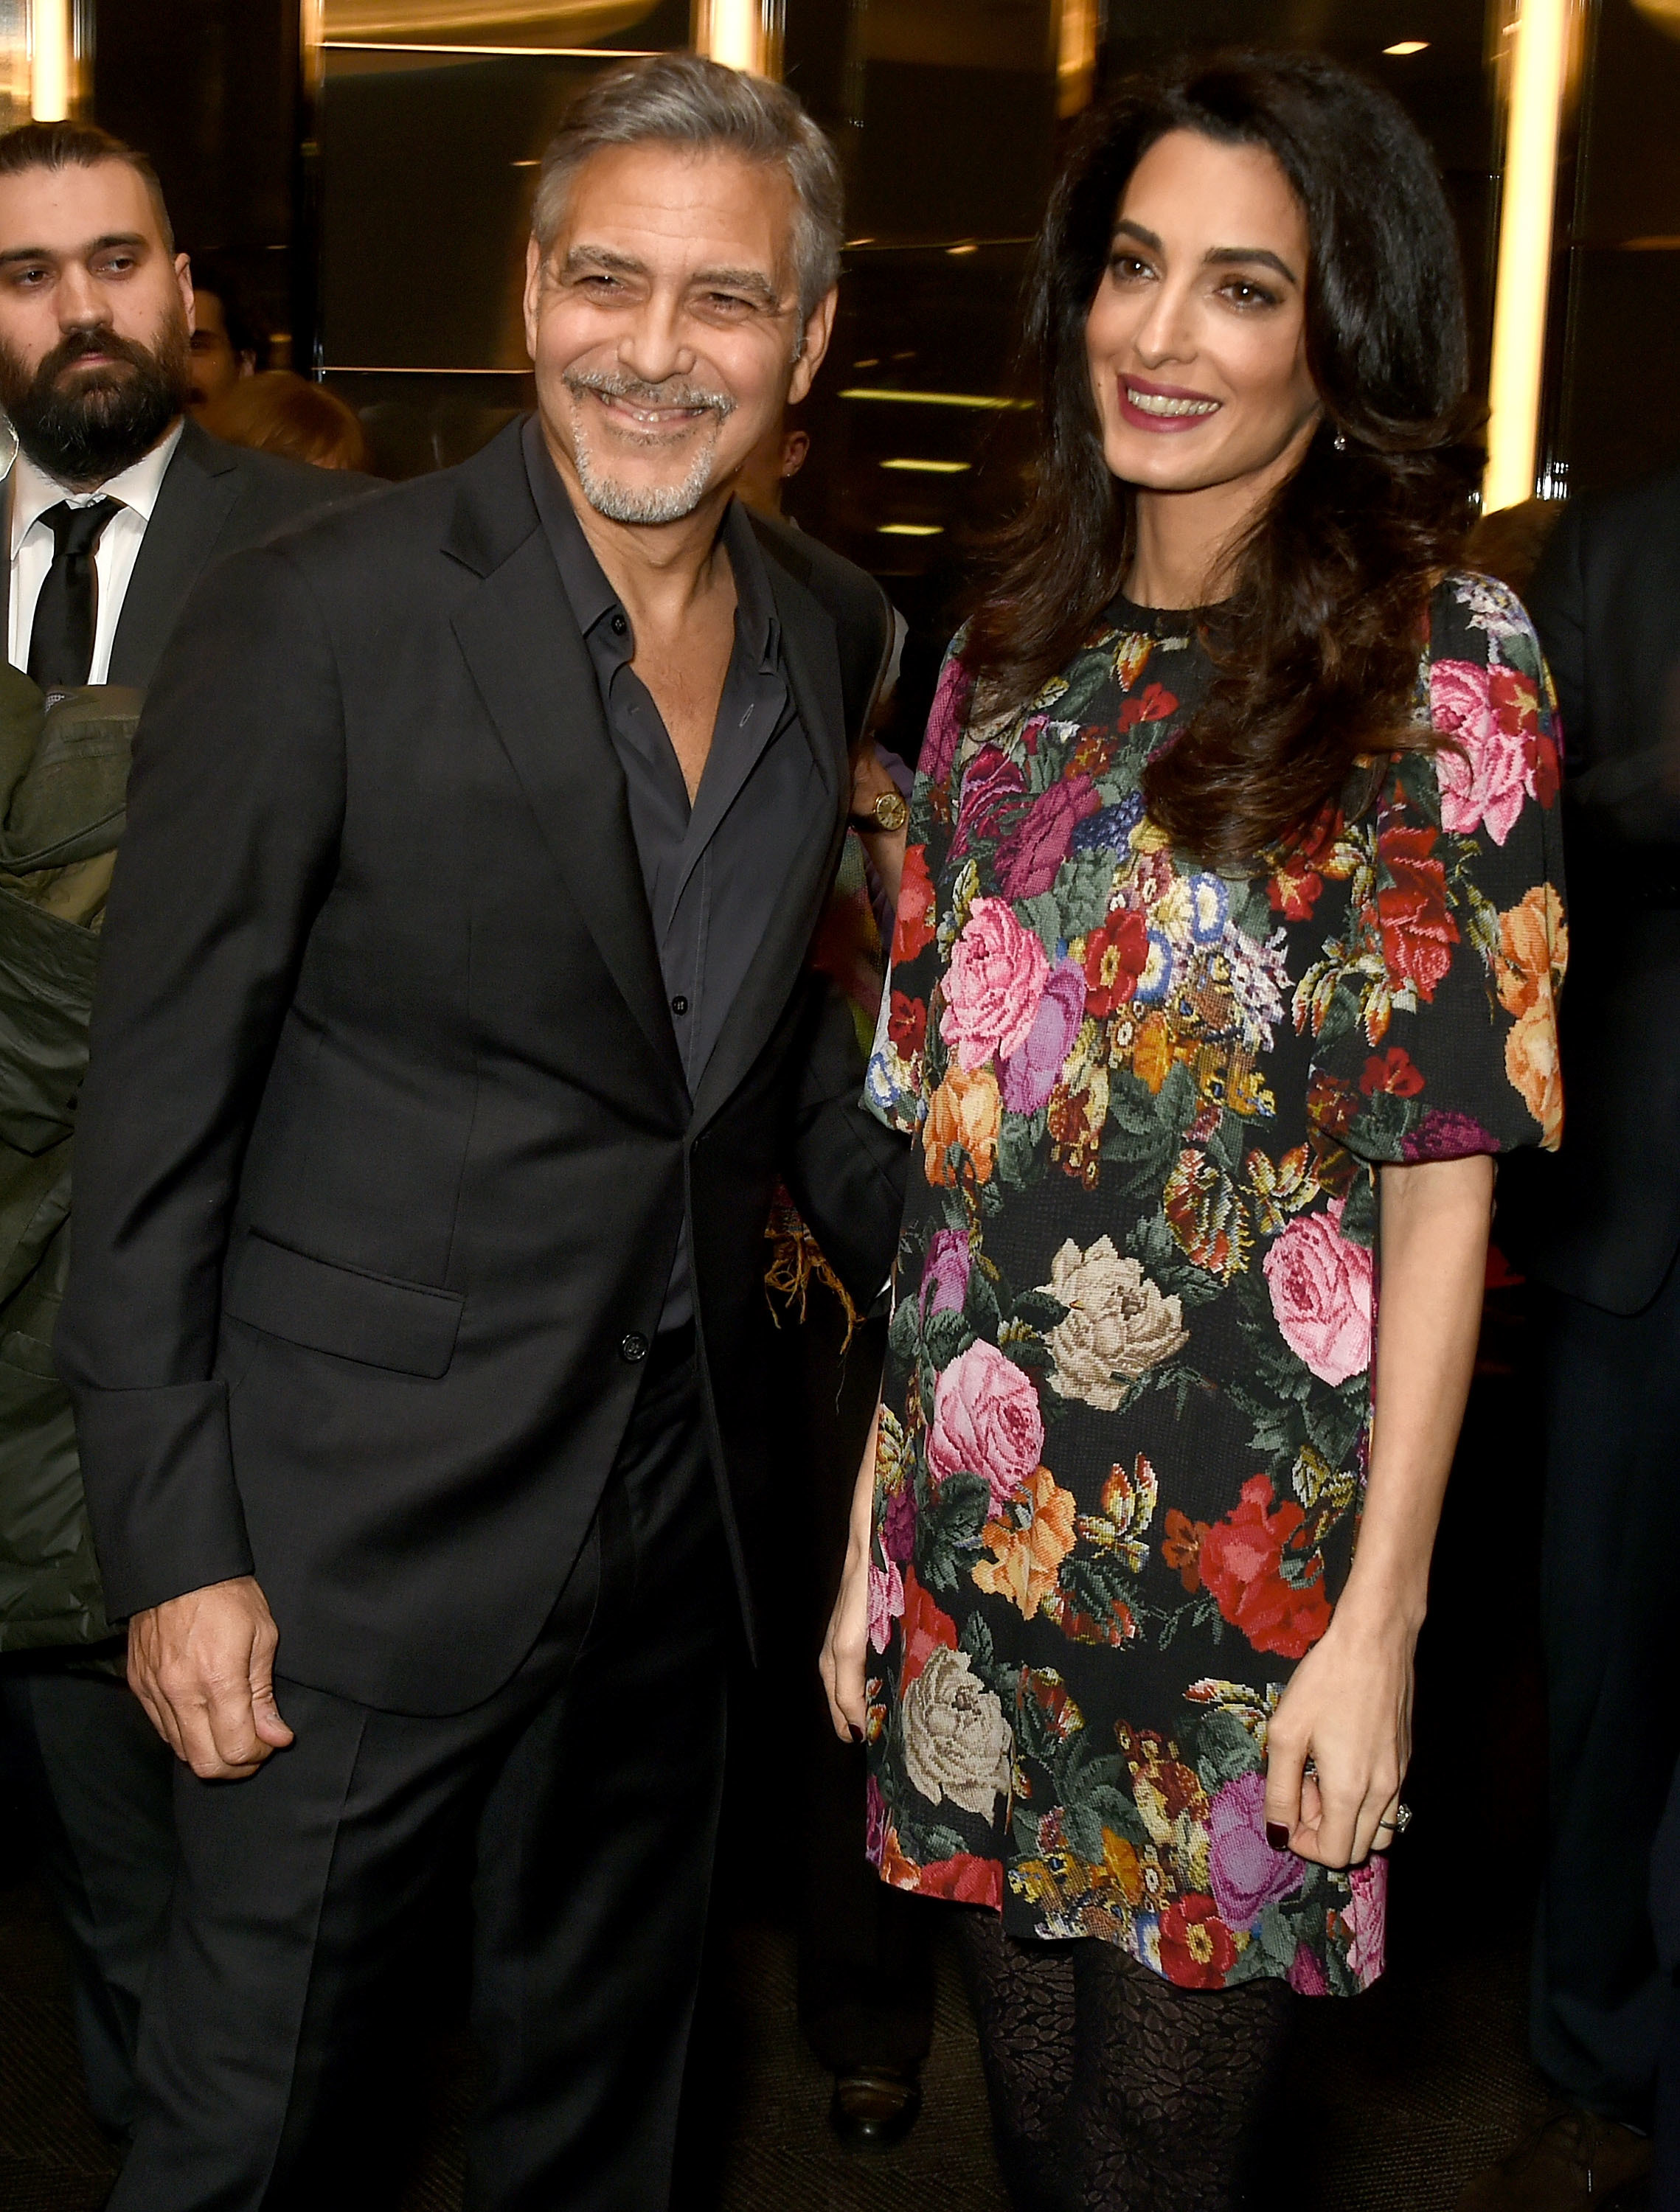 George Clooney is 'getting a little anxious' about twins' arrival